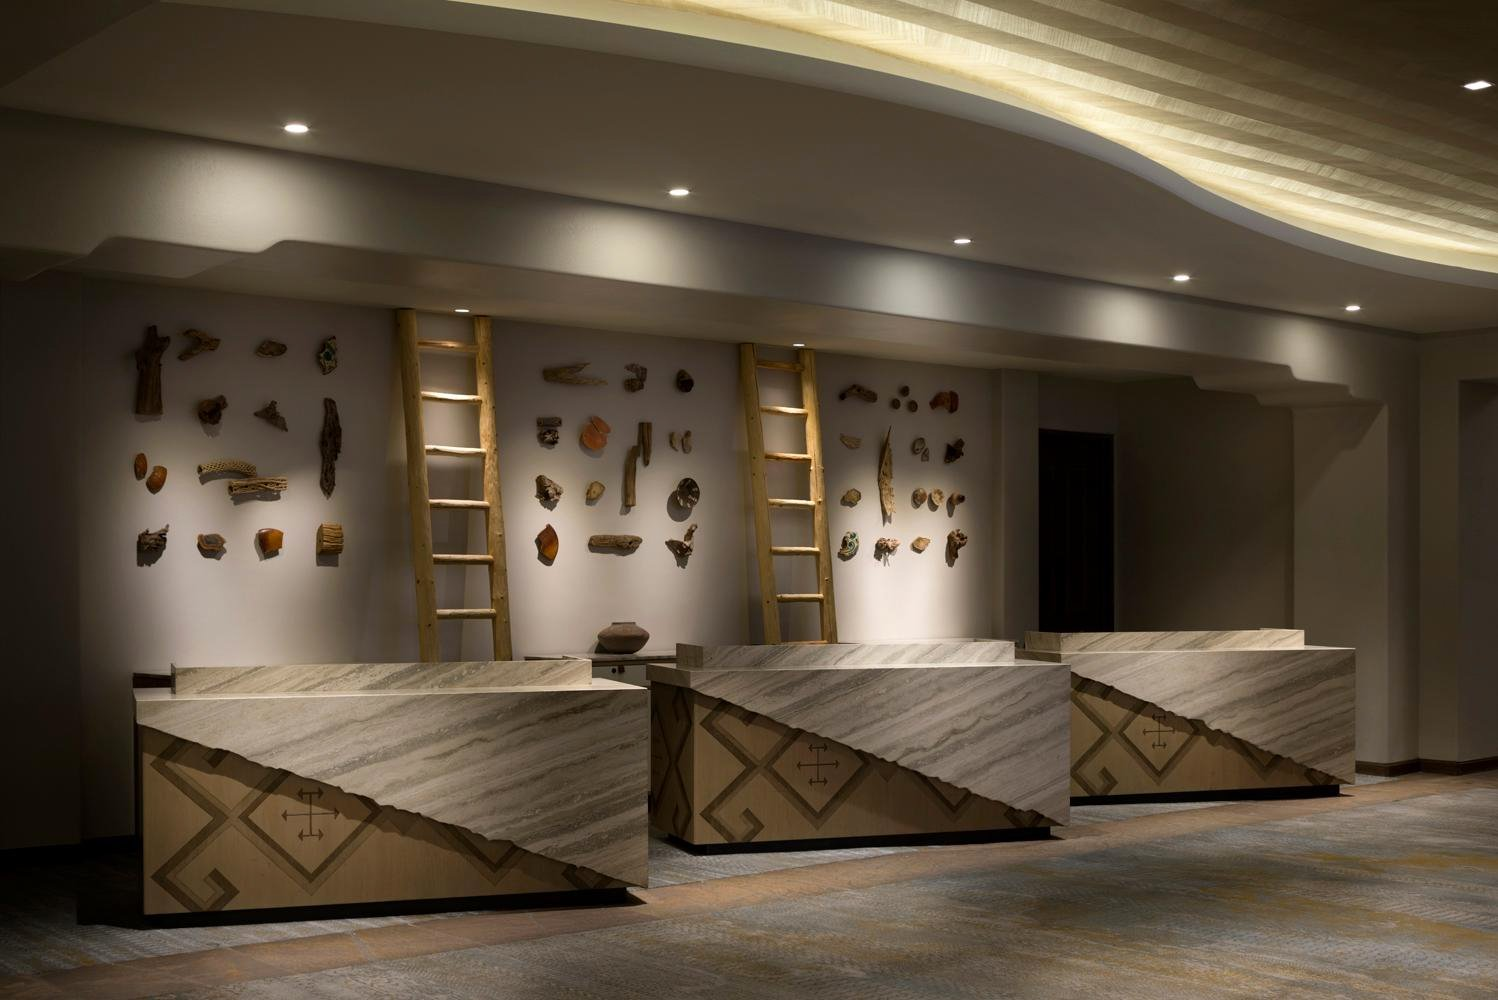 Hyatt Regency Tamaya Resort & Spa will also renovate its meeting spaces and a Santa Ana Pueblo tribal artifact display.